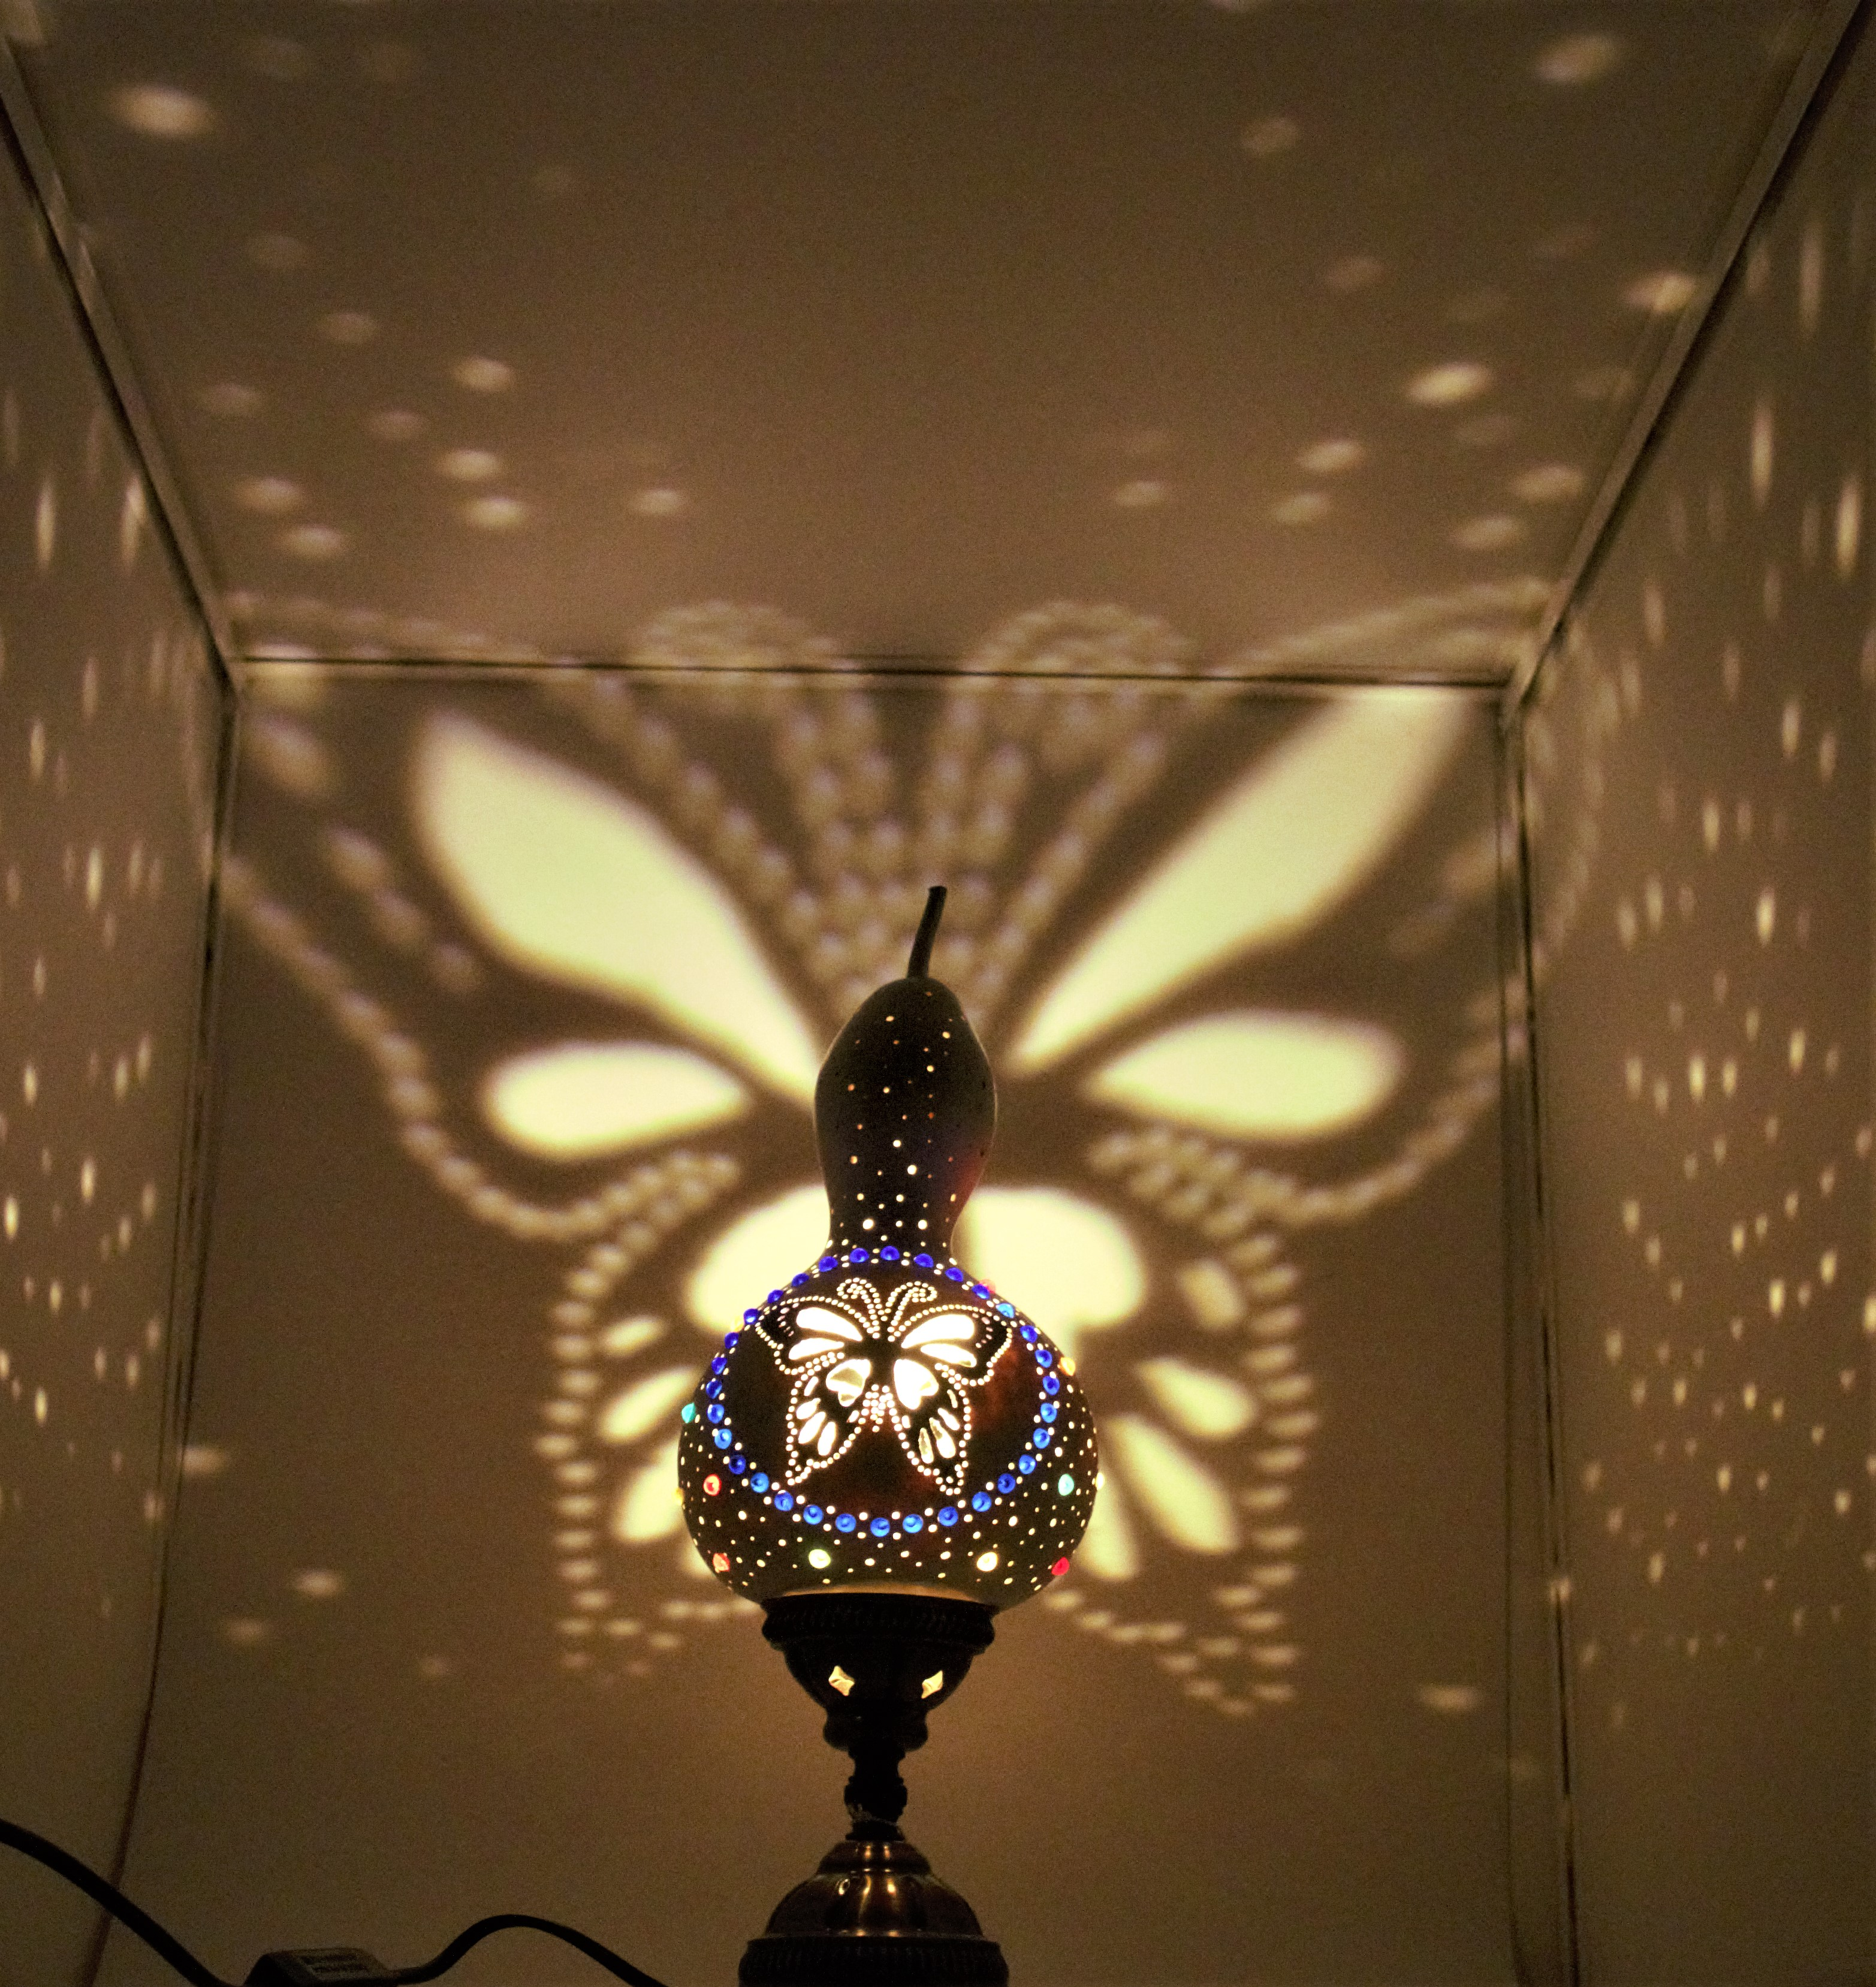 Butterfly Effect  Lampshad Night Lamp High Quality Material Gourd Table Handmade Cover Desk Lights For Bedroom Study Homereading